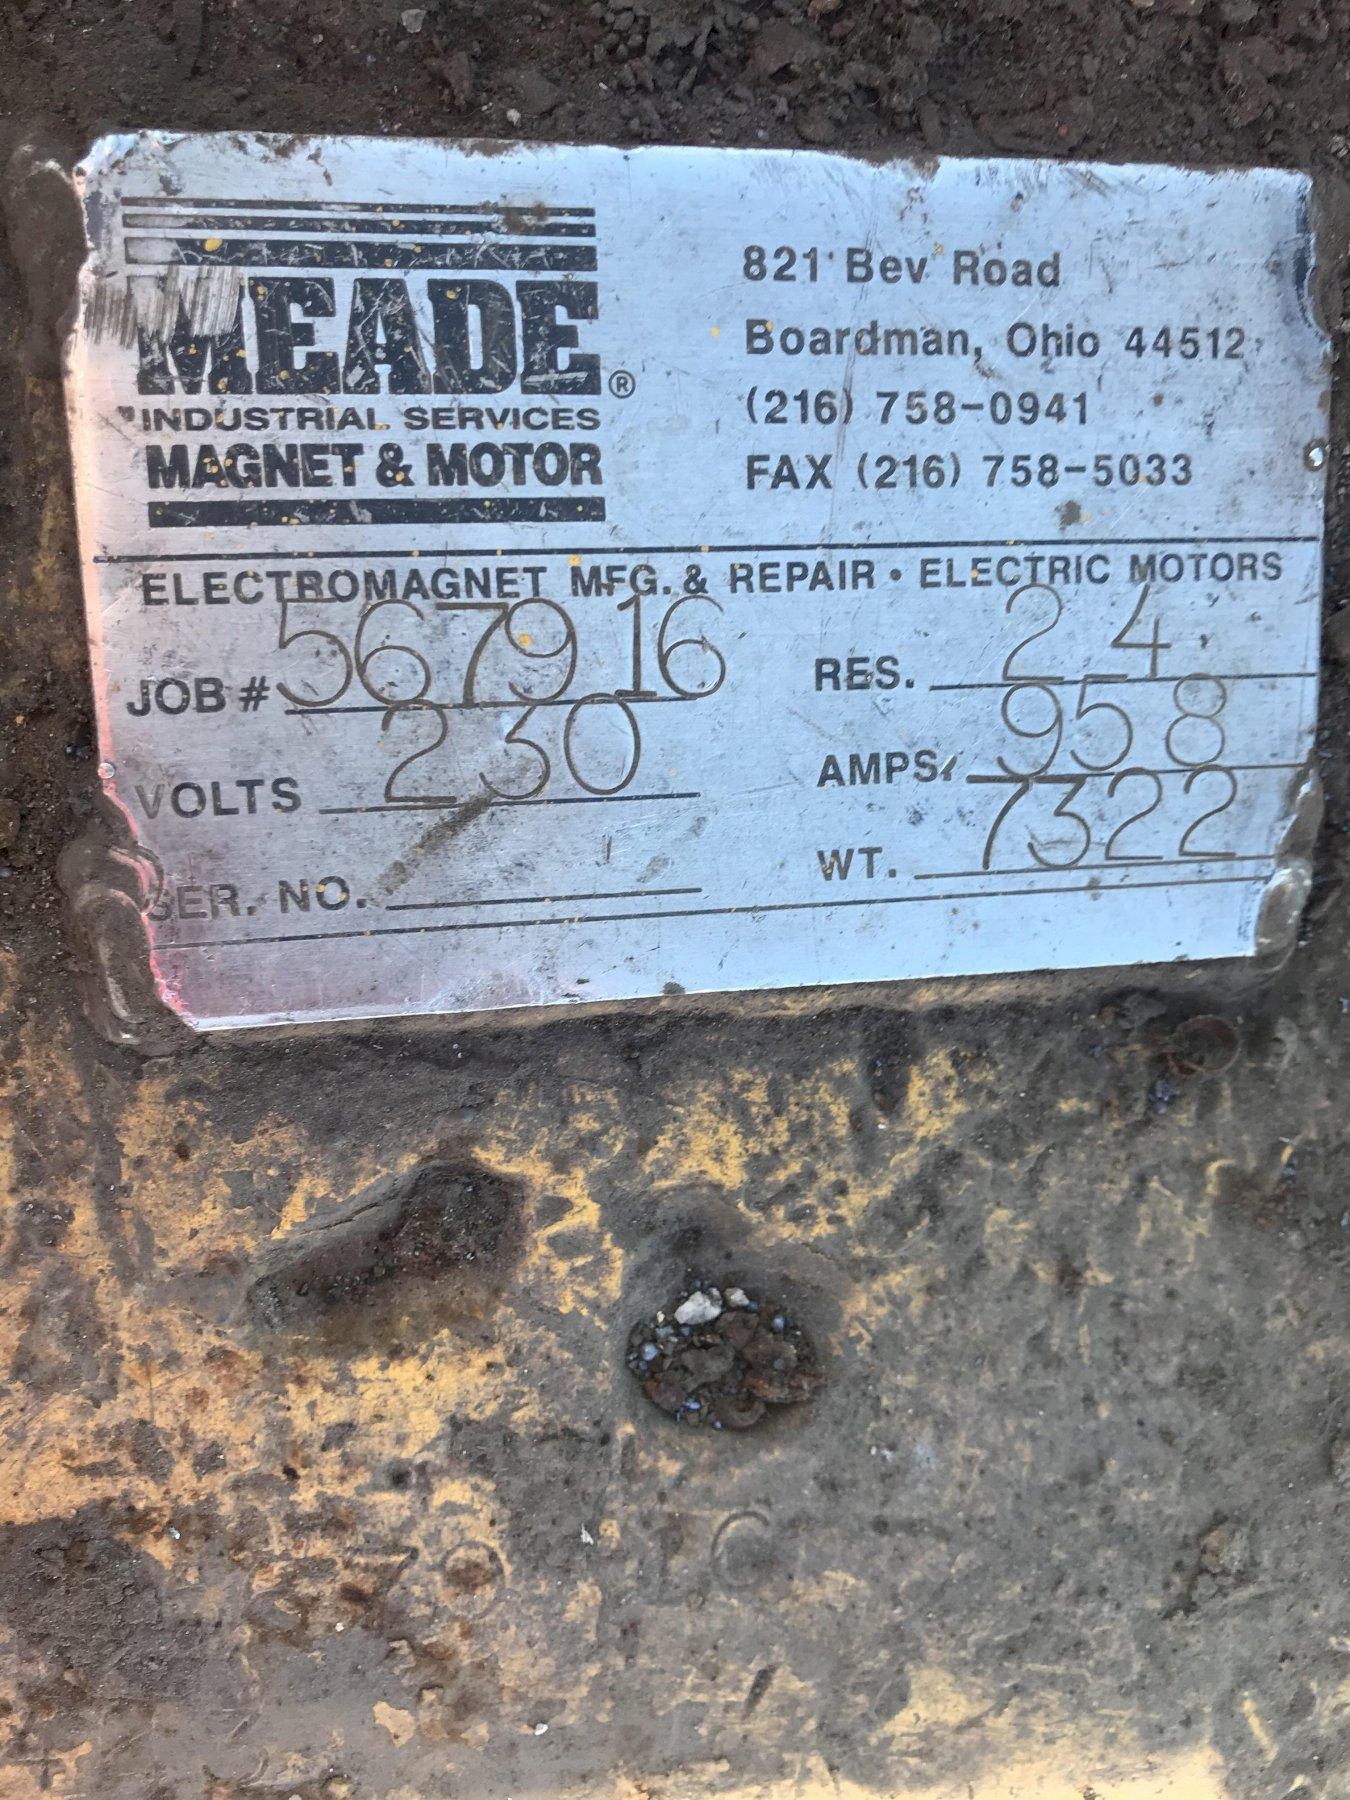 "Meade 69"" Crane Magnet s/n 567916, 230 volt, weight 7322#"